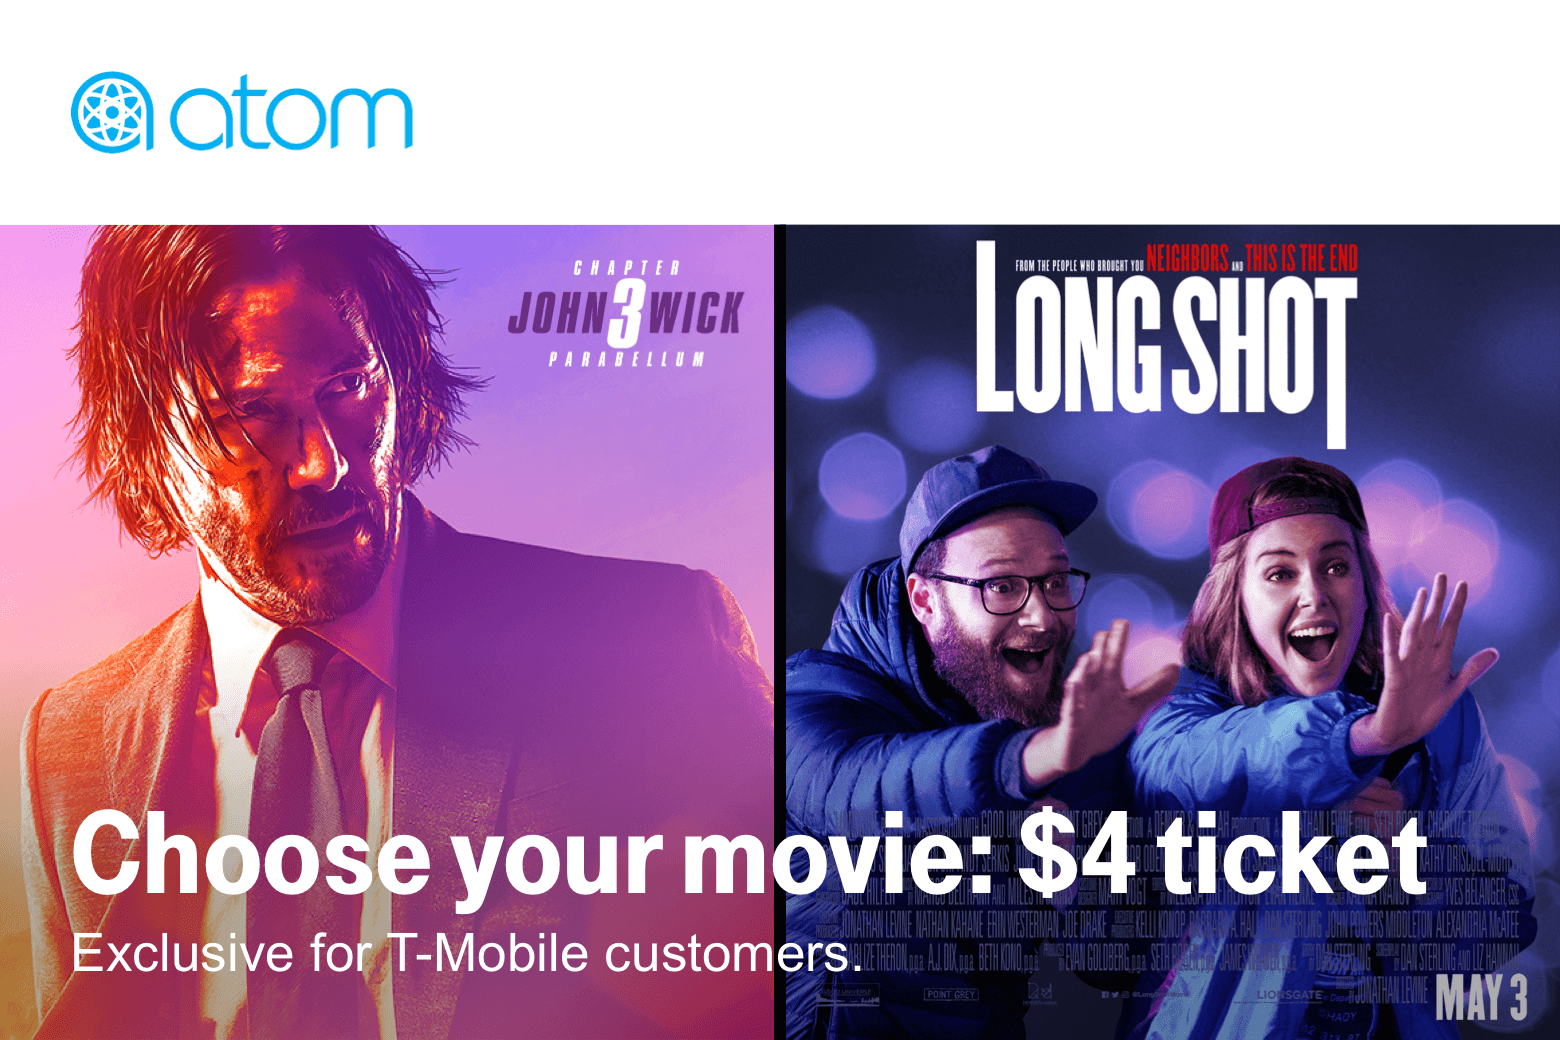 Atom. Choose your movie: 4 dollar ticket. Exclusive for T-Mobile customers.